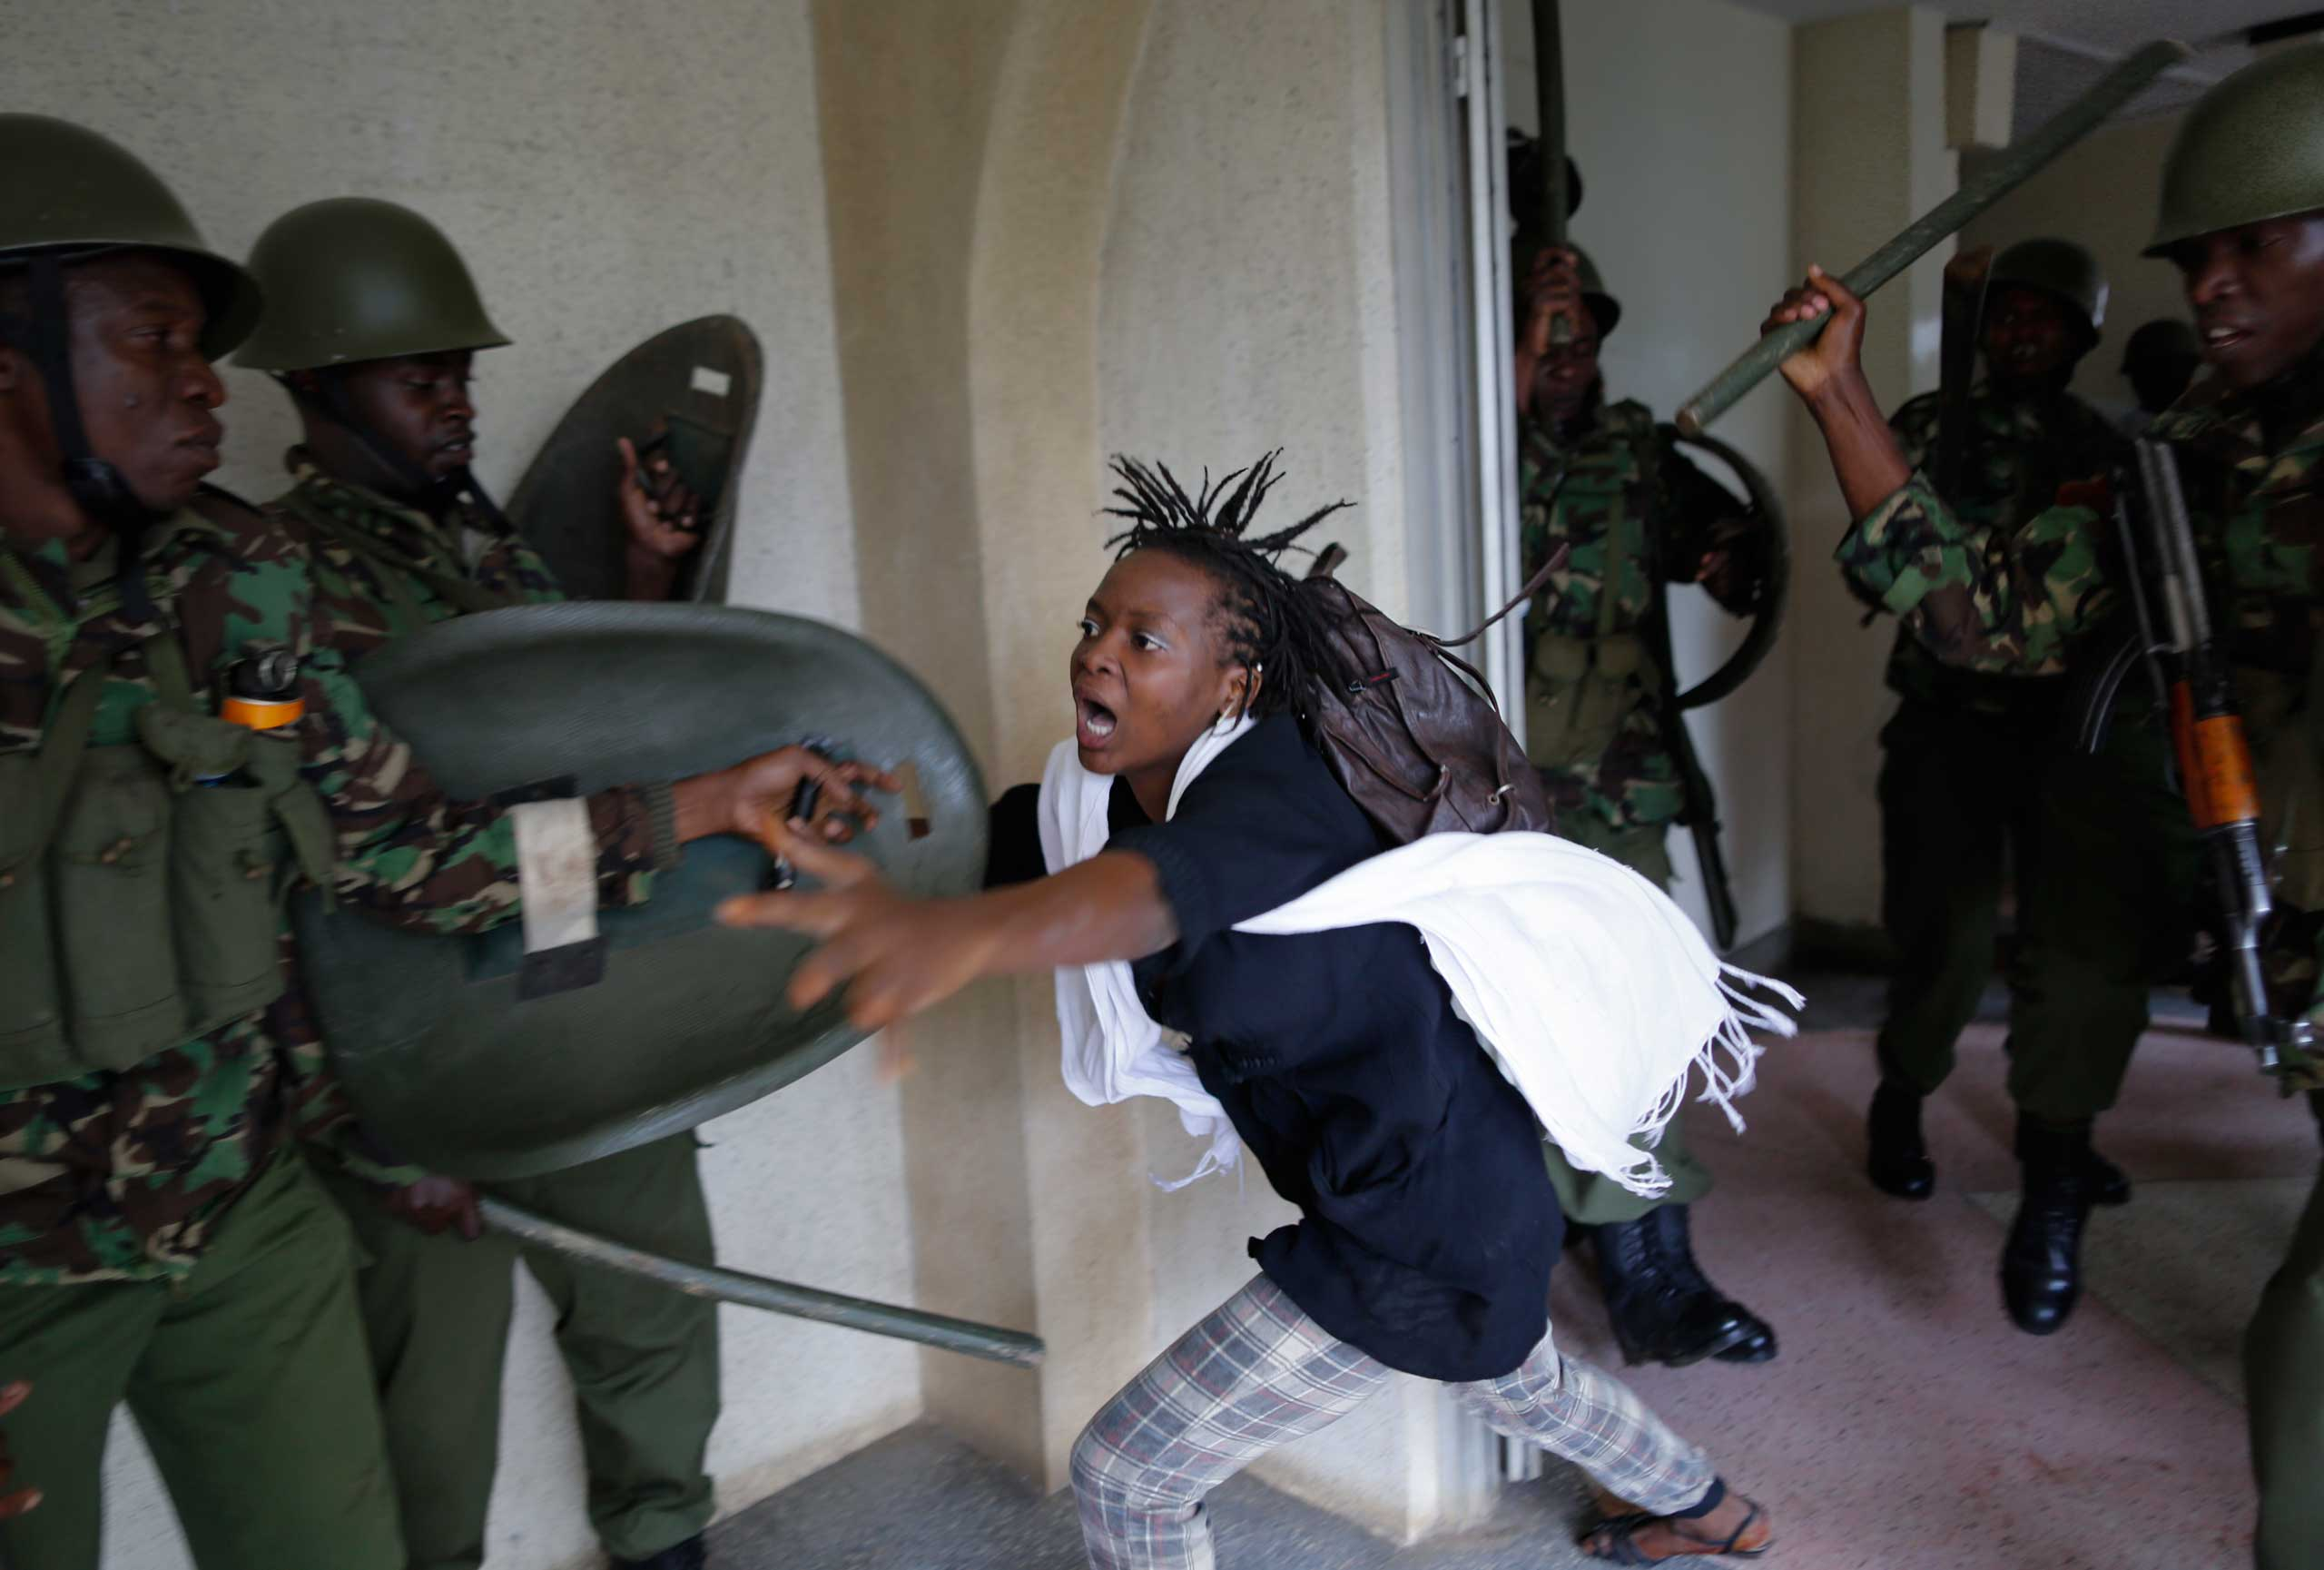 Kenya: Protests against tuition fee hikesA woman flees as a riot police officer beats her with a baton, after chasing protesting students into the Nairobi University campus in Nairobi, Kenya, May 20, 2014.